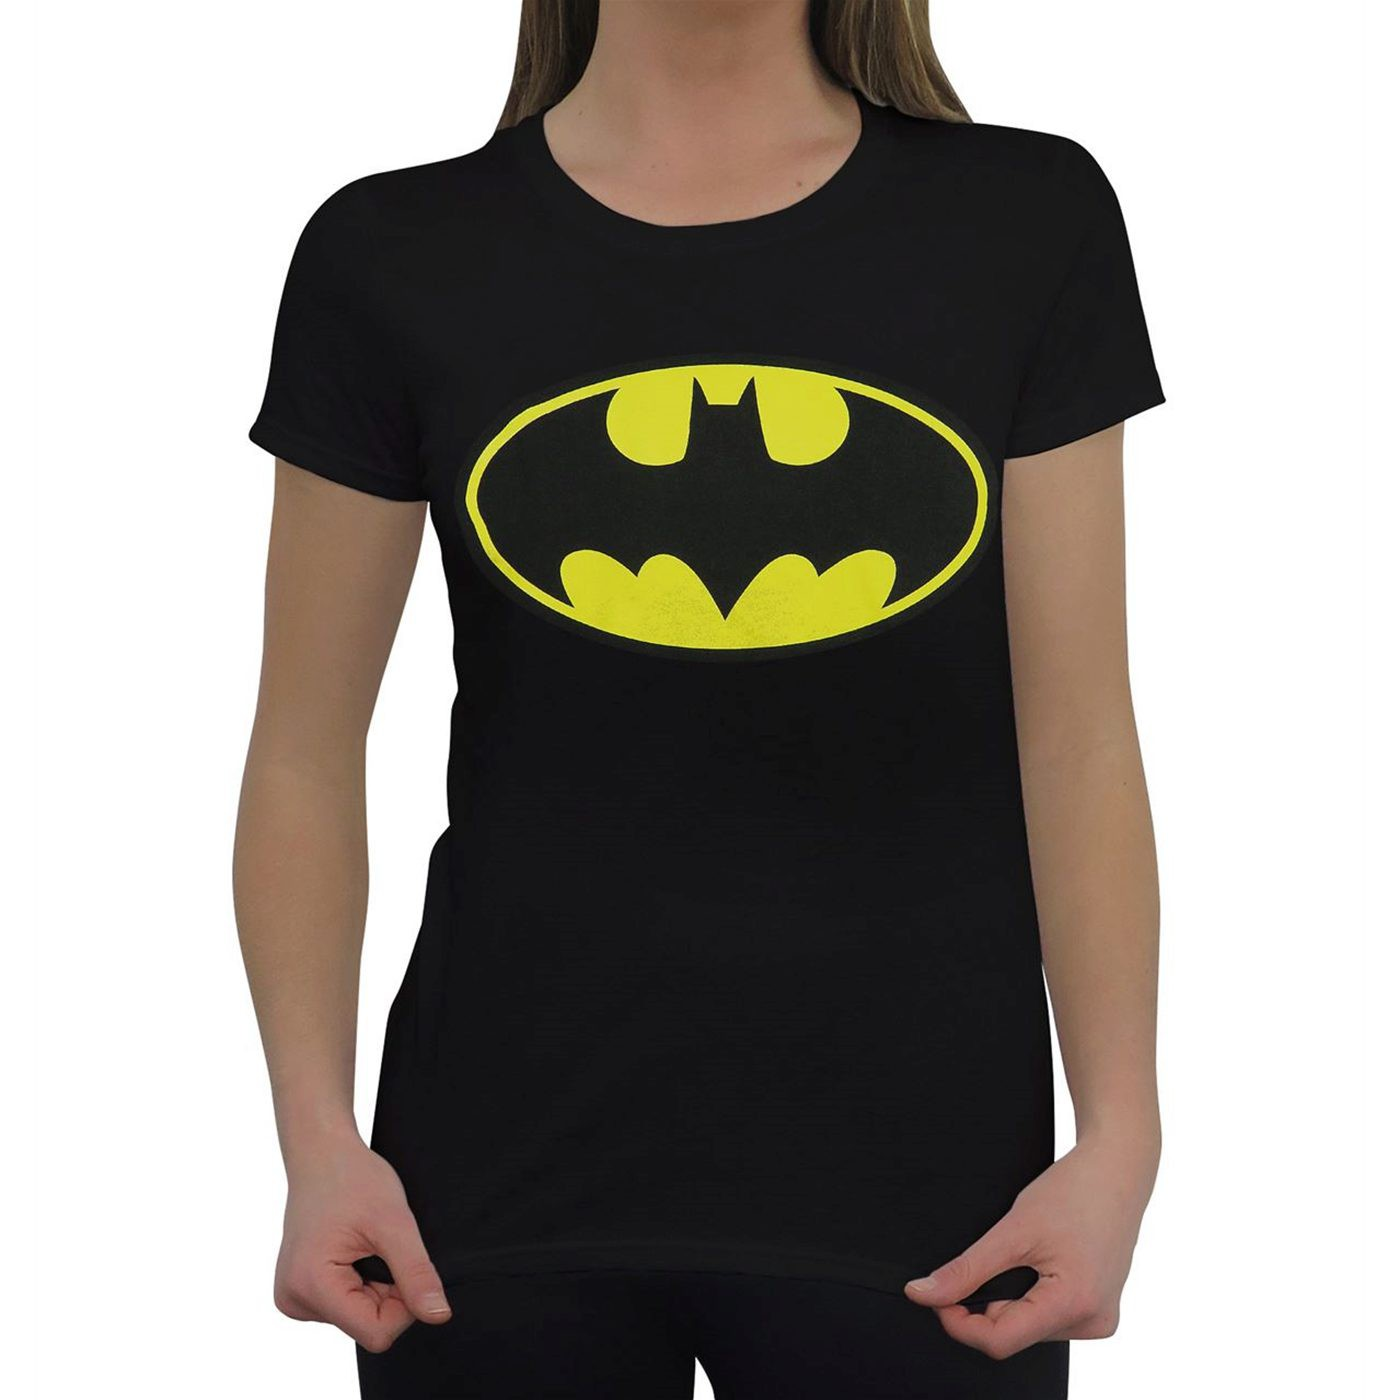 Women's Batman Symbol T-Shirt